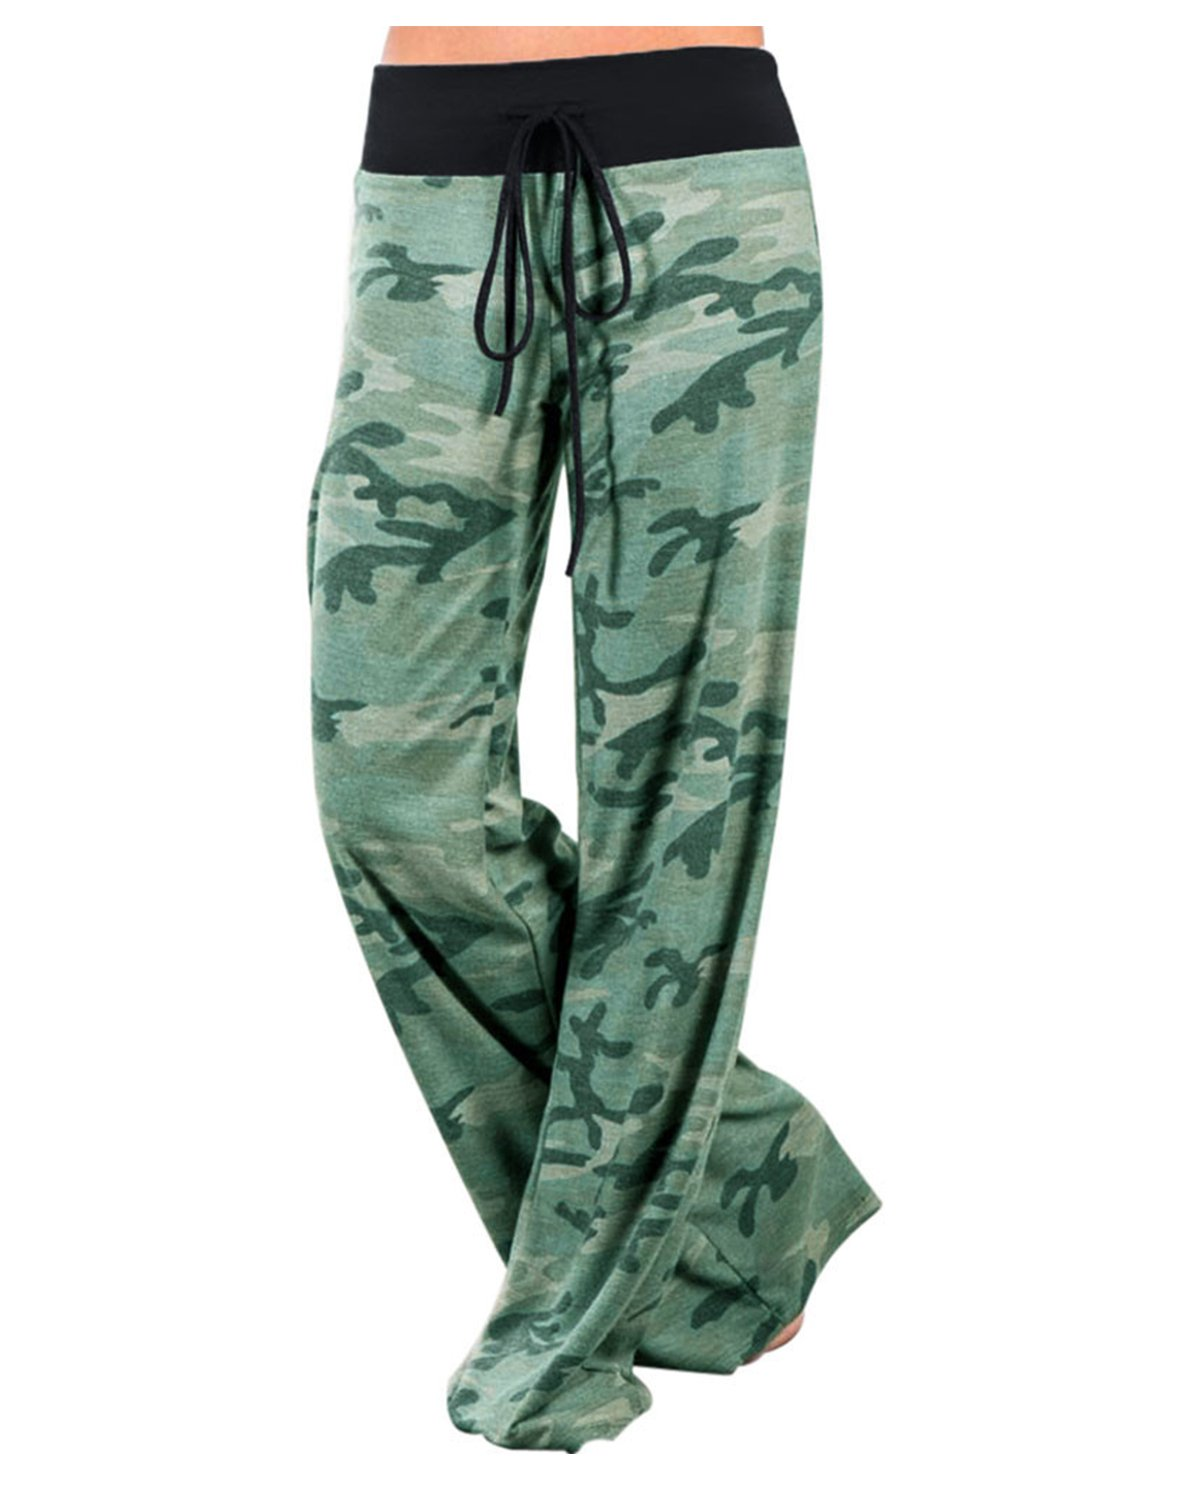 GAMISS Women's Casual Wide Leg Pajama Pants Camo Print Comfy Drawstring High Waist Yoga Lounge Palazzo Pants Green XL